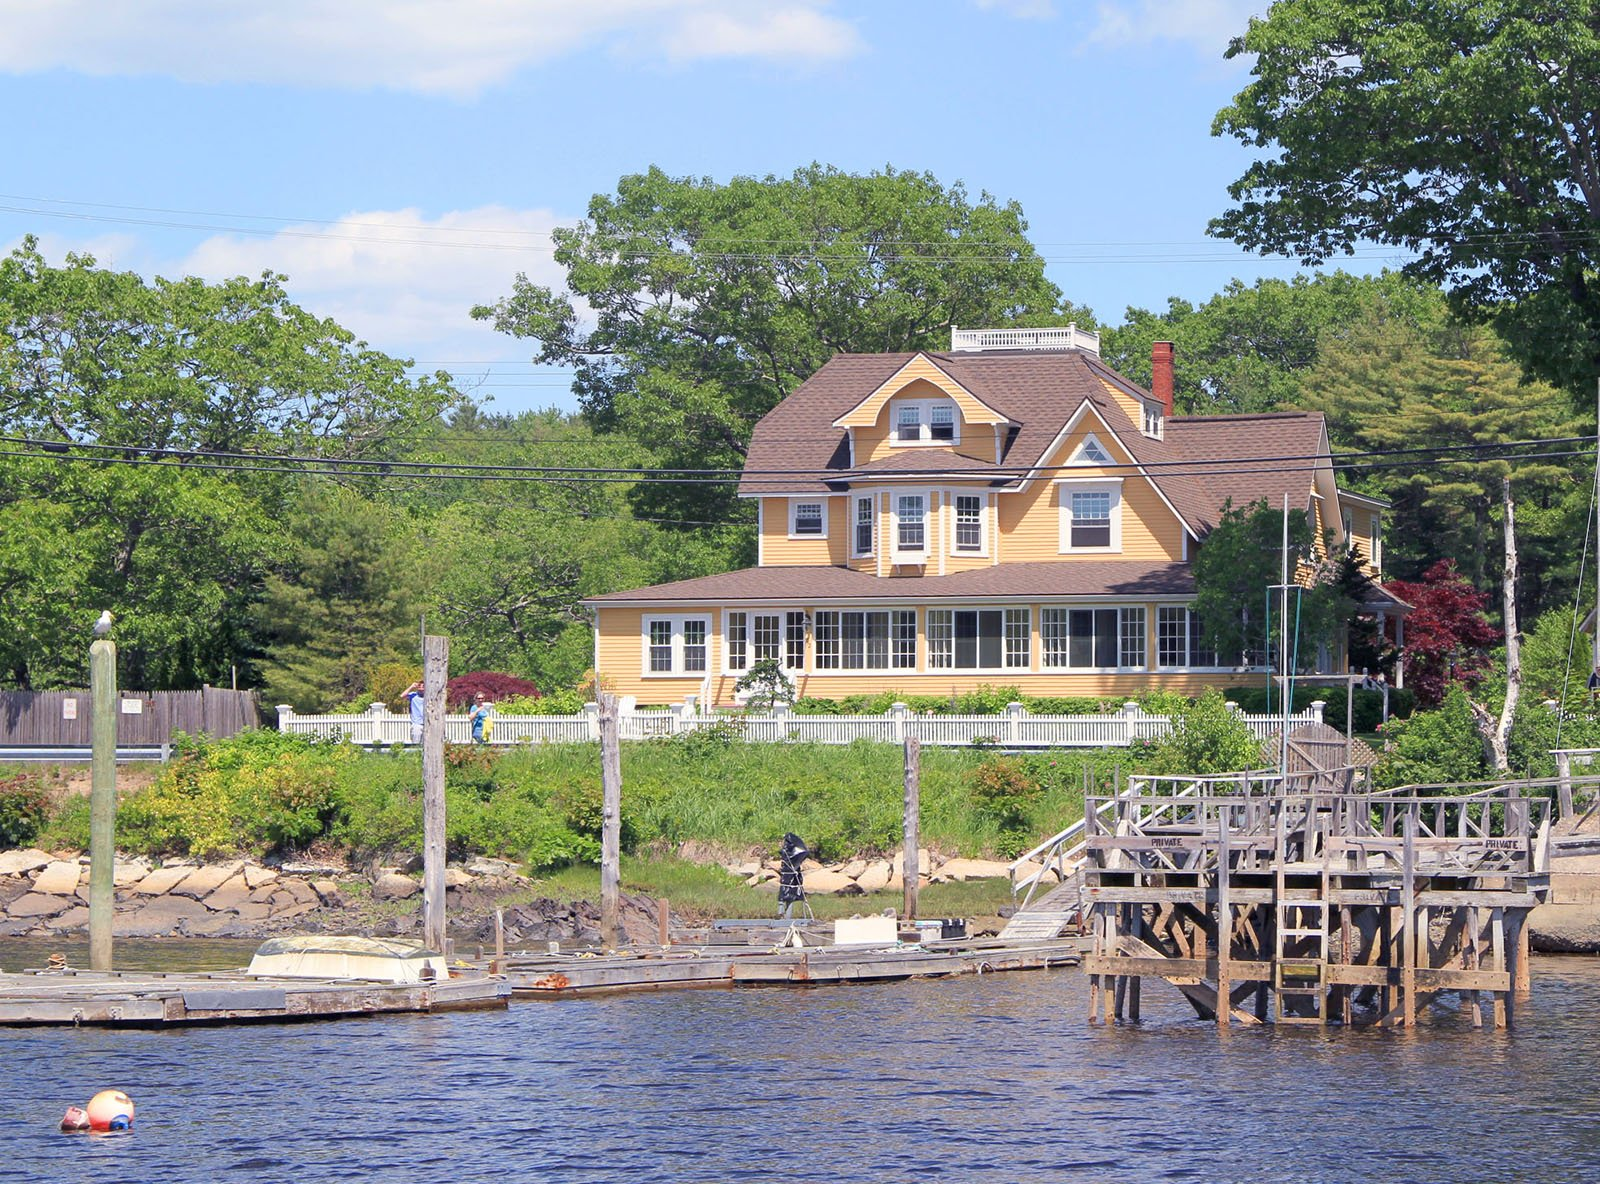 On the Kennebunk River and Cabot Cove in Backyard. Open Year Round. Water on 3 sides. See much more at www.luxurykennebunkporthouserental.com